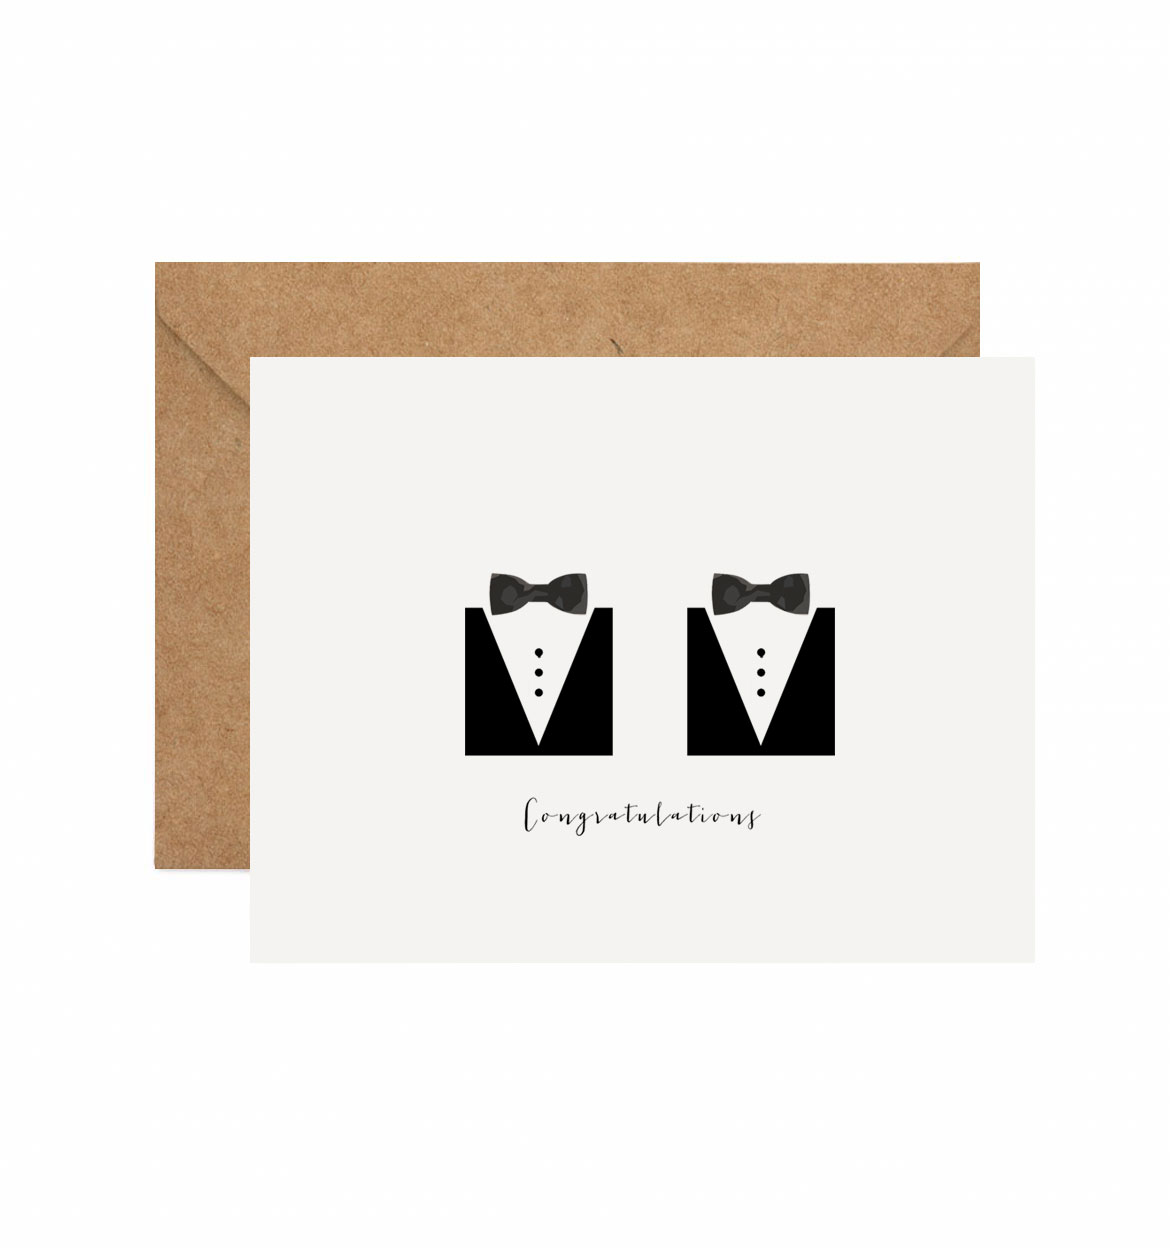 Telamodaprints Creative Greeting Cards And Stationary